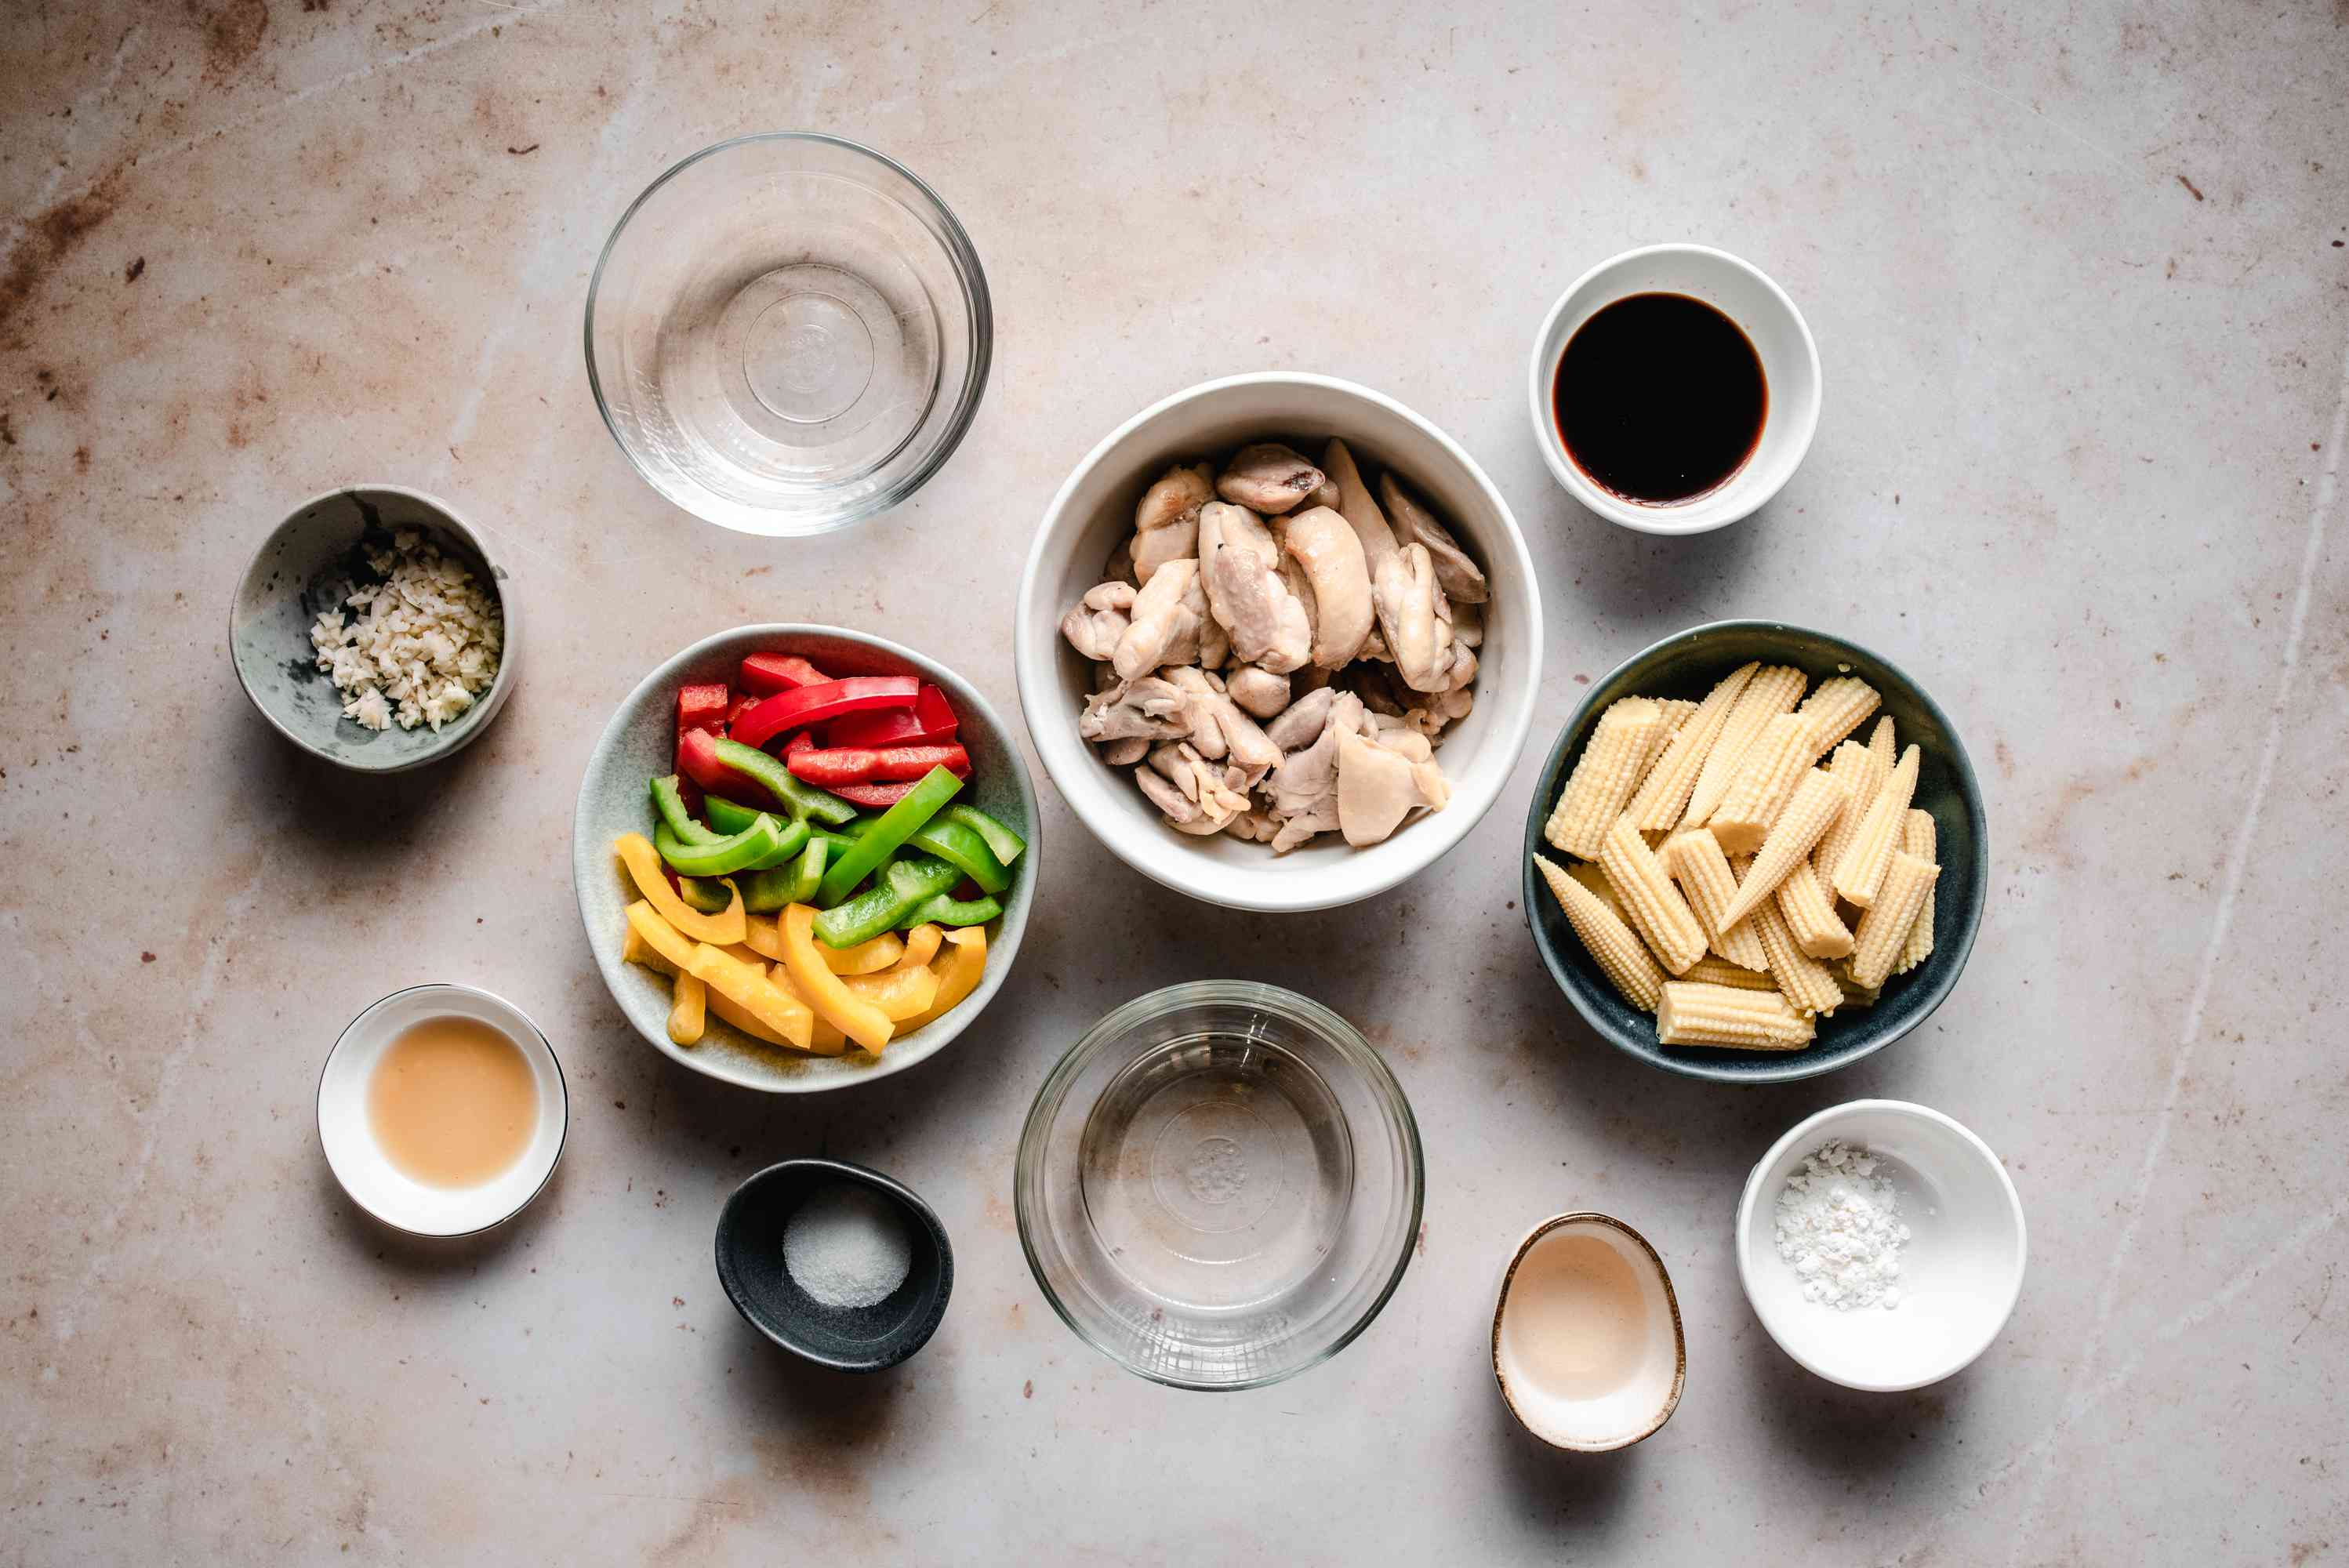 Ingredients for chicken stir fry with bell peppers